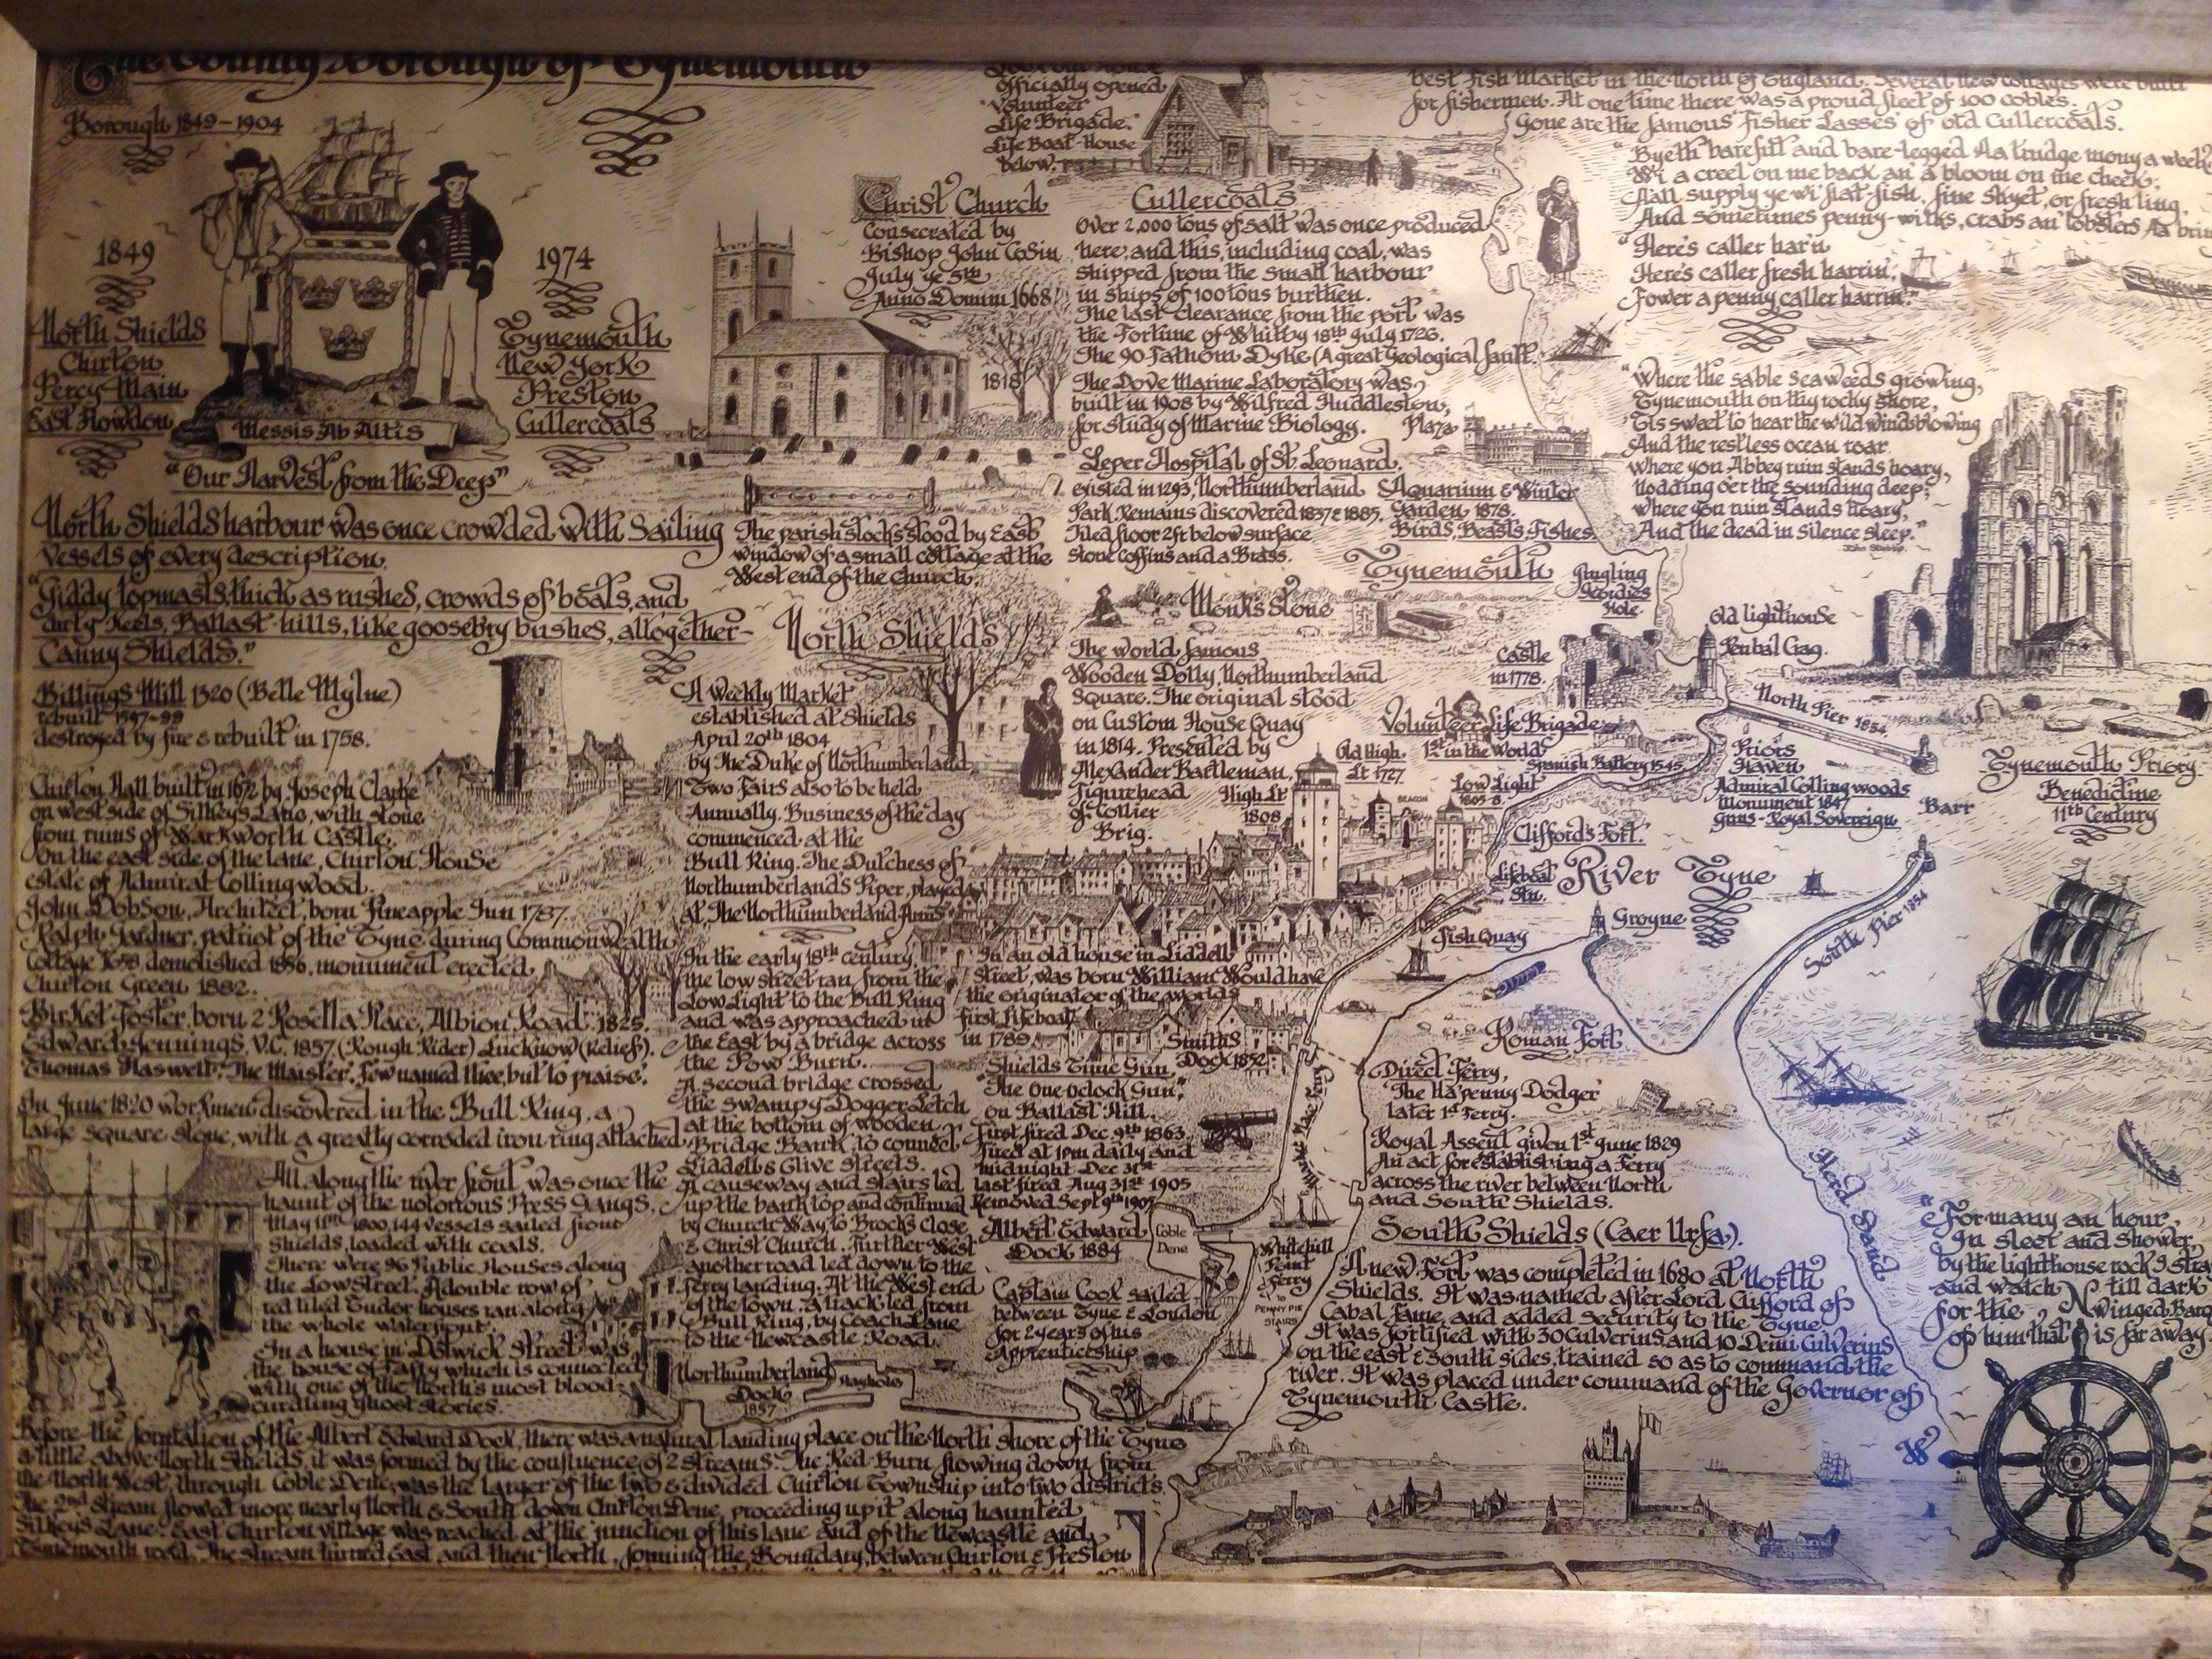 line drawing map of north tyneside on display at the watch house